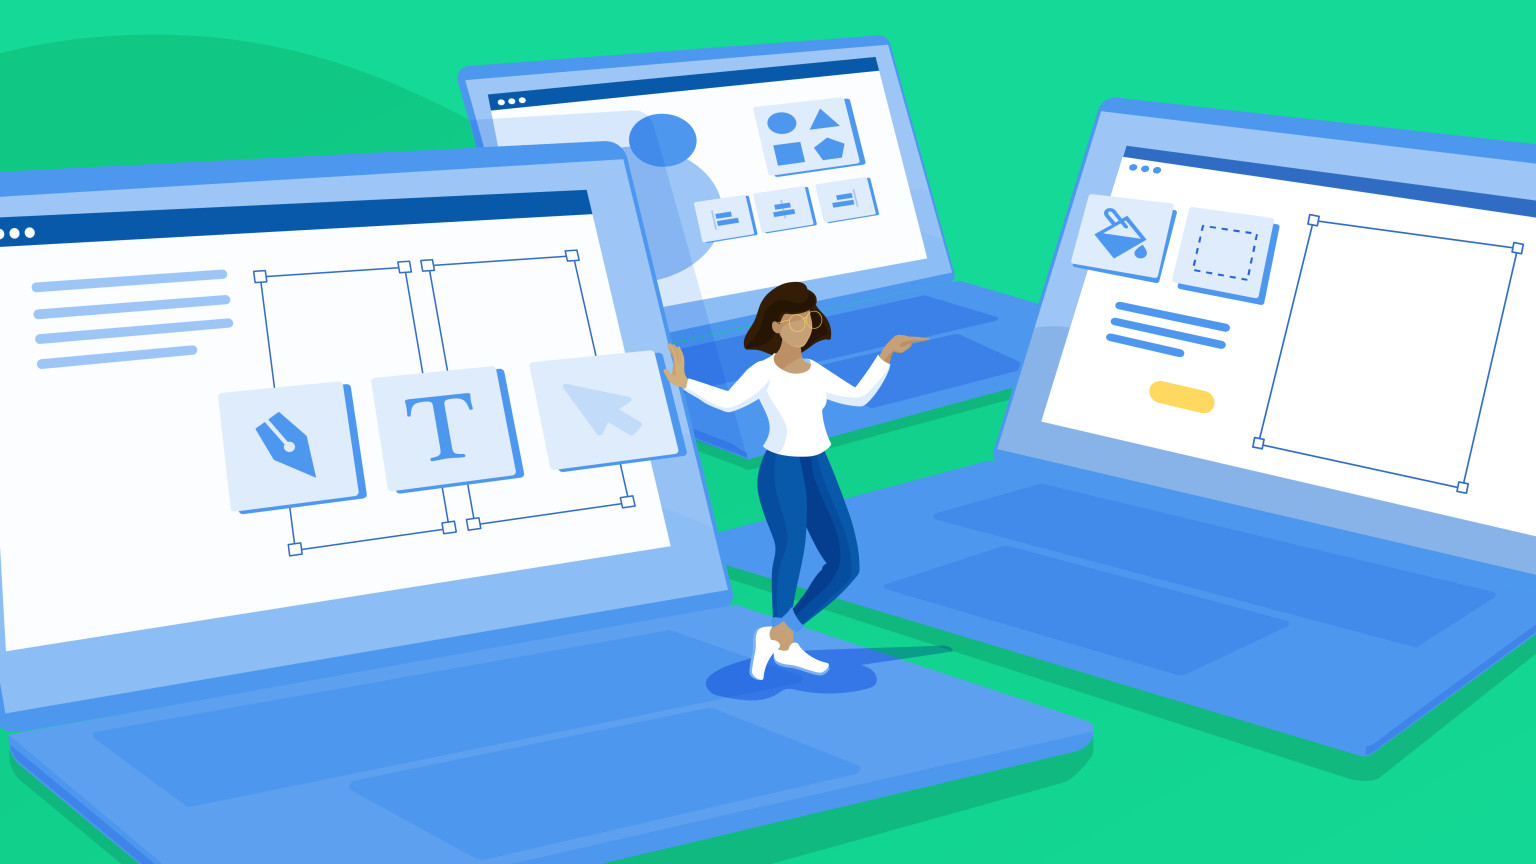 Grace Tai, the manager of the brand design team at Contentful, shares her tricks and tips to running an empowered and successful brand design team.